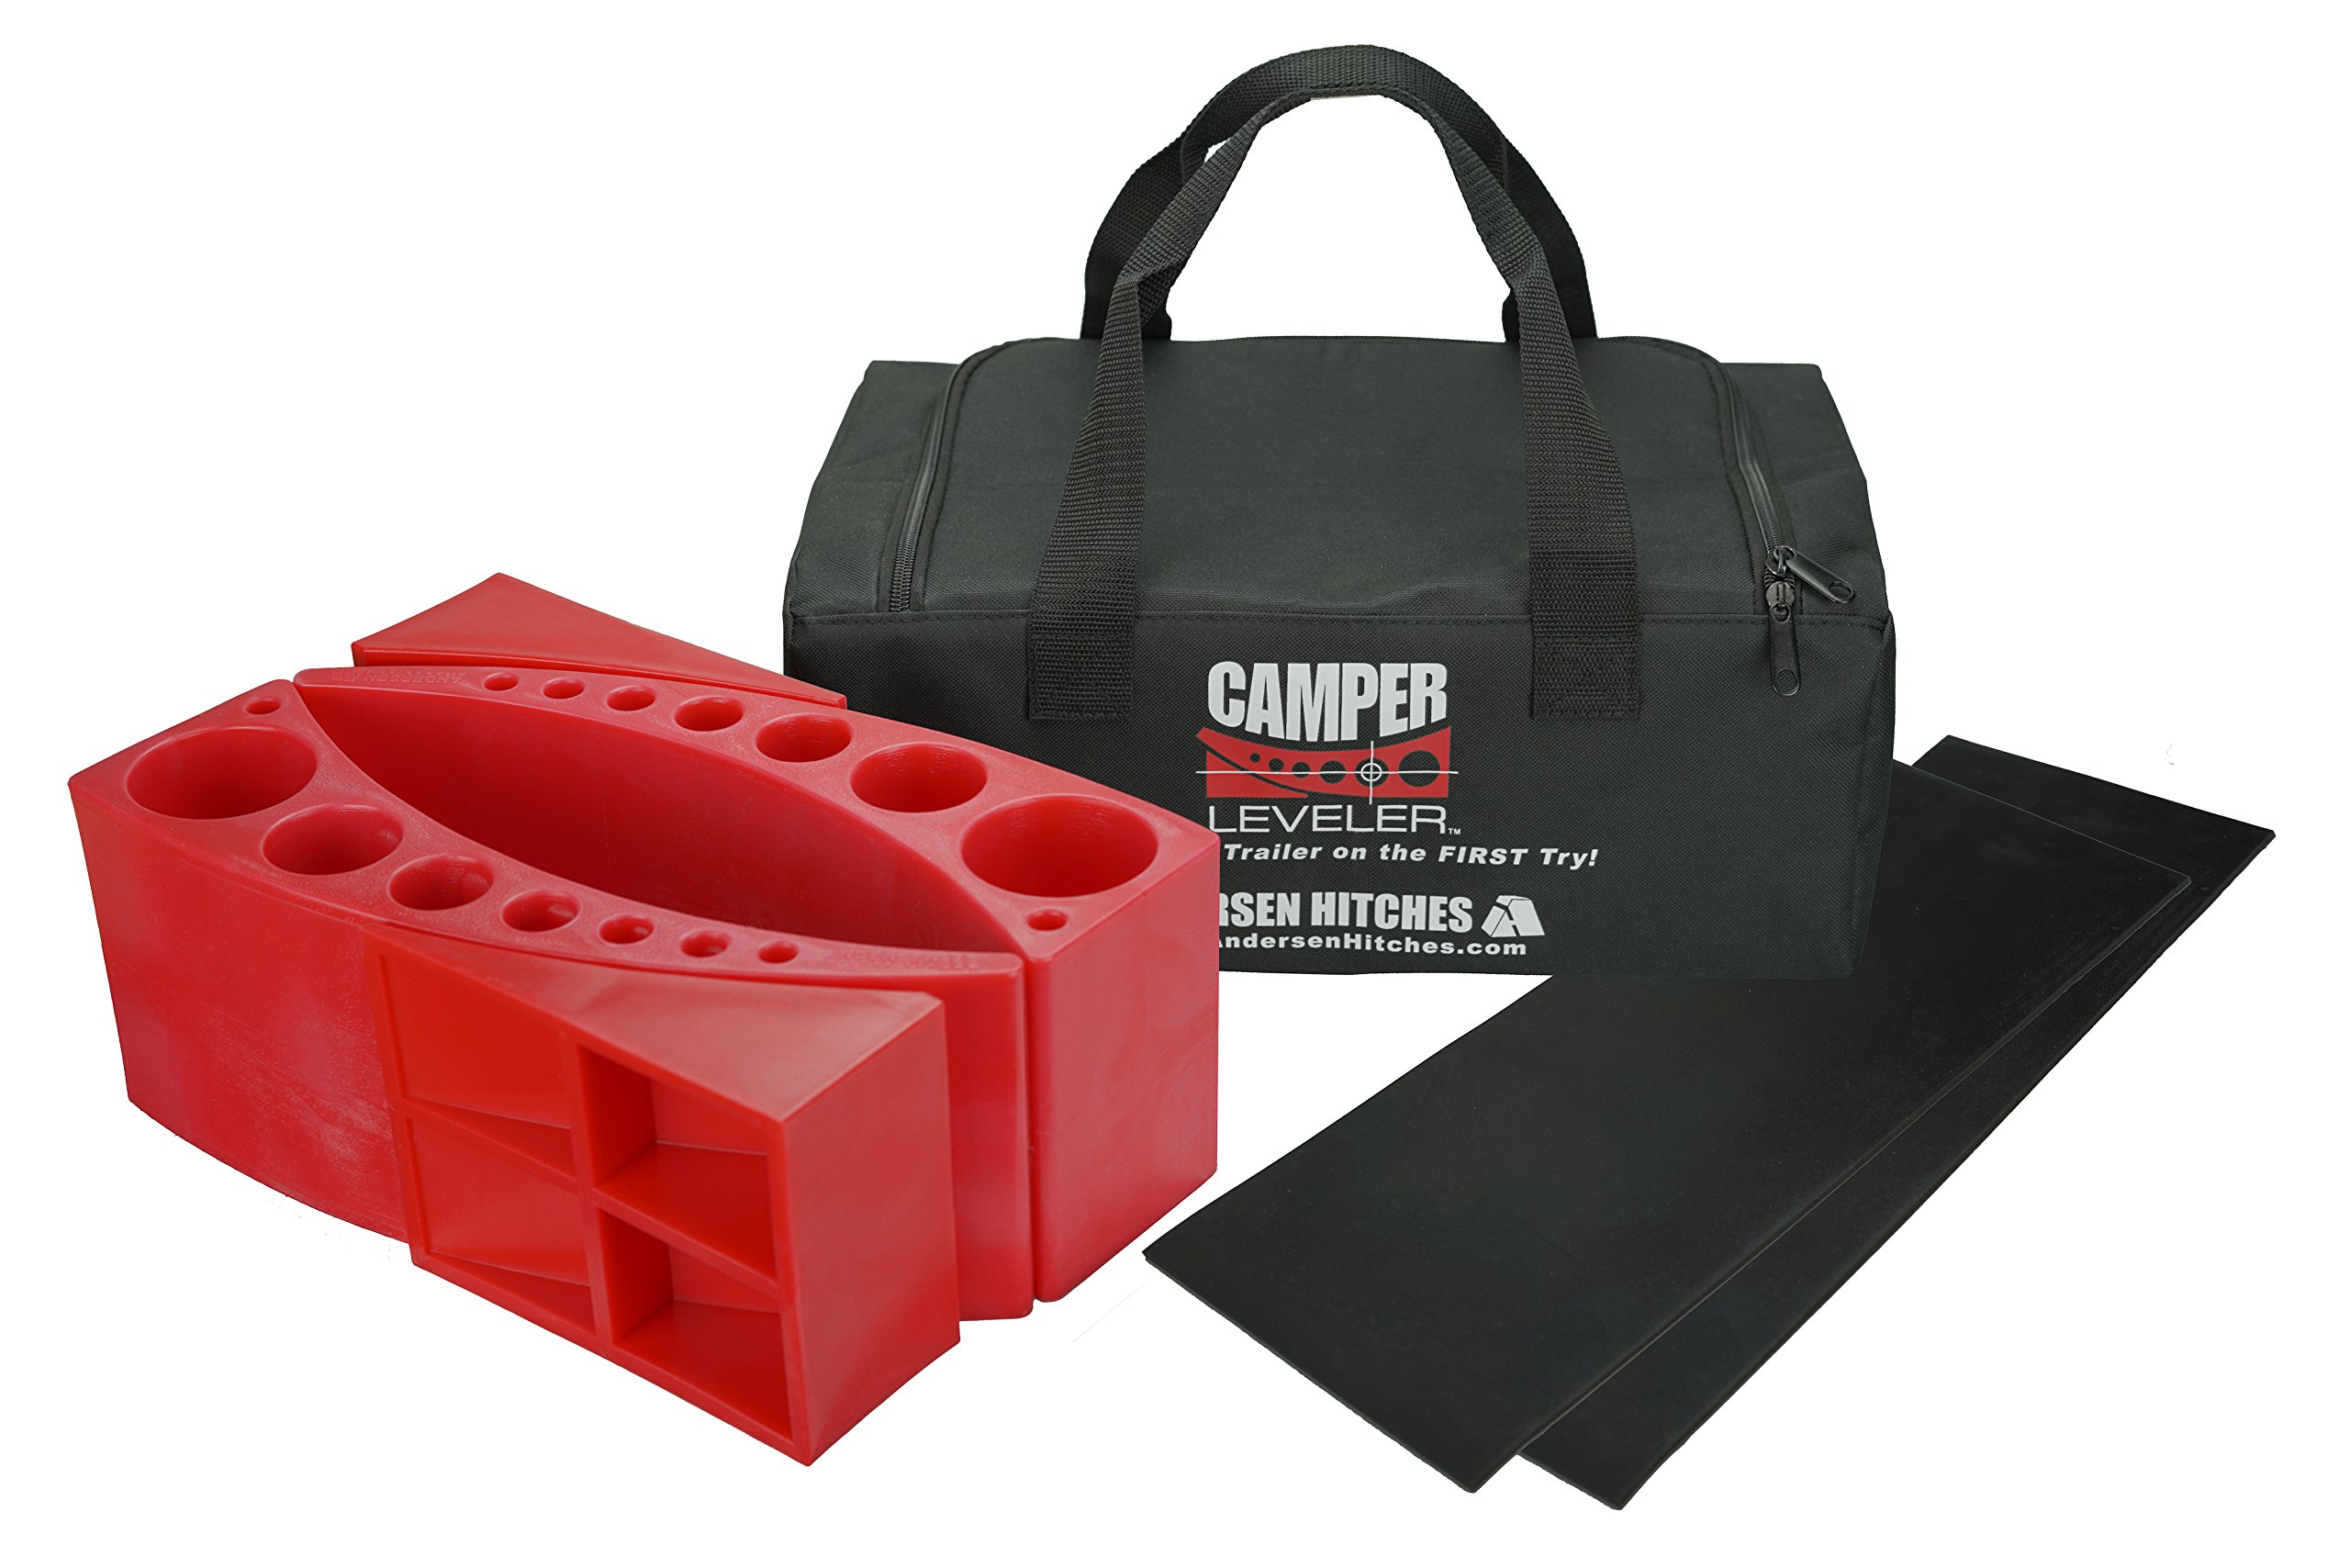 Andersen 2-Pack Camper Leveler Plus 2 Rubber Mats in Sturdy Carry Bag with Double Handles by Andersen Hitches